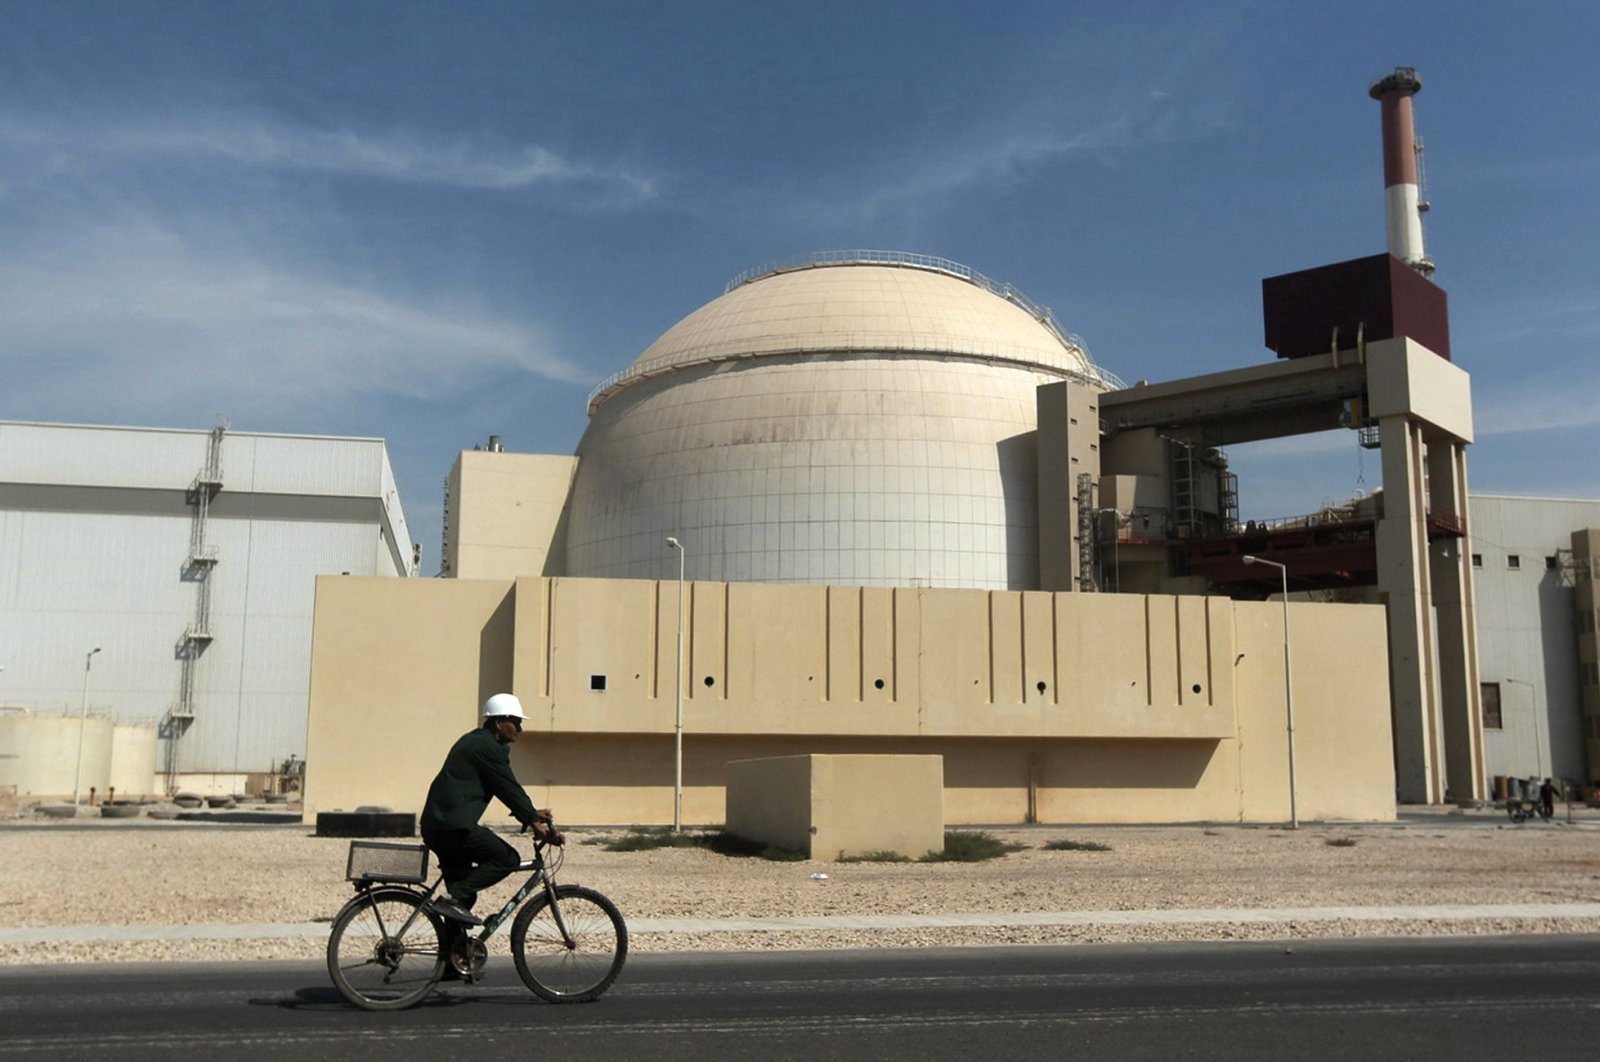 A worker rides a bicycle in front of the reactor building of the Bushehr nuclear power plant, just outside the southern city of Bushehr, Iran, Oct. 26, 2010. (AP Photo)